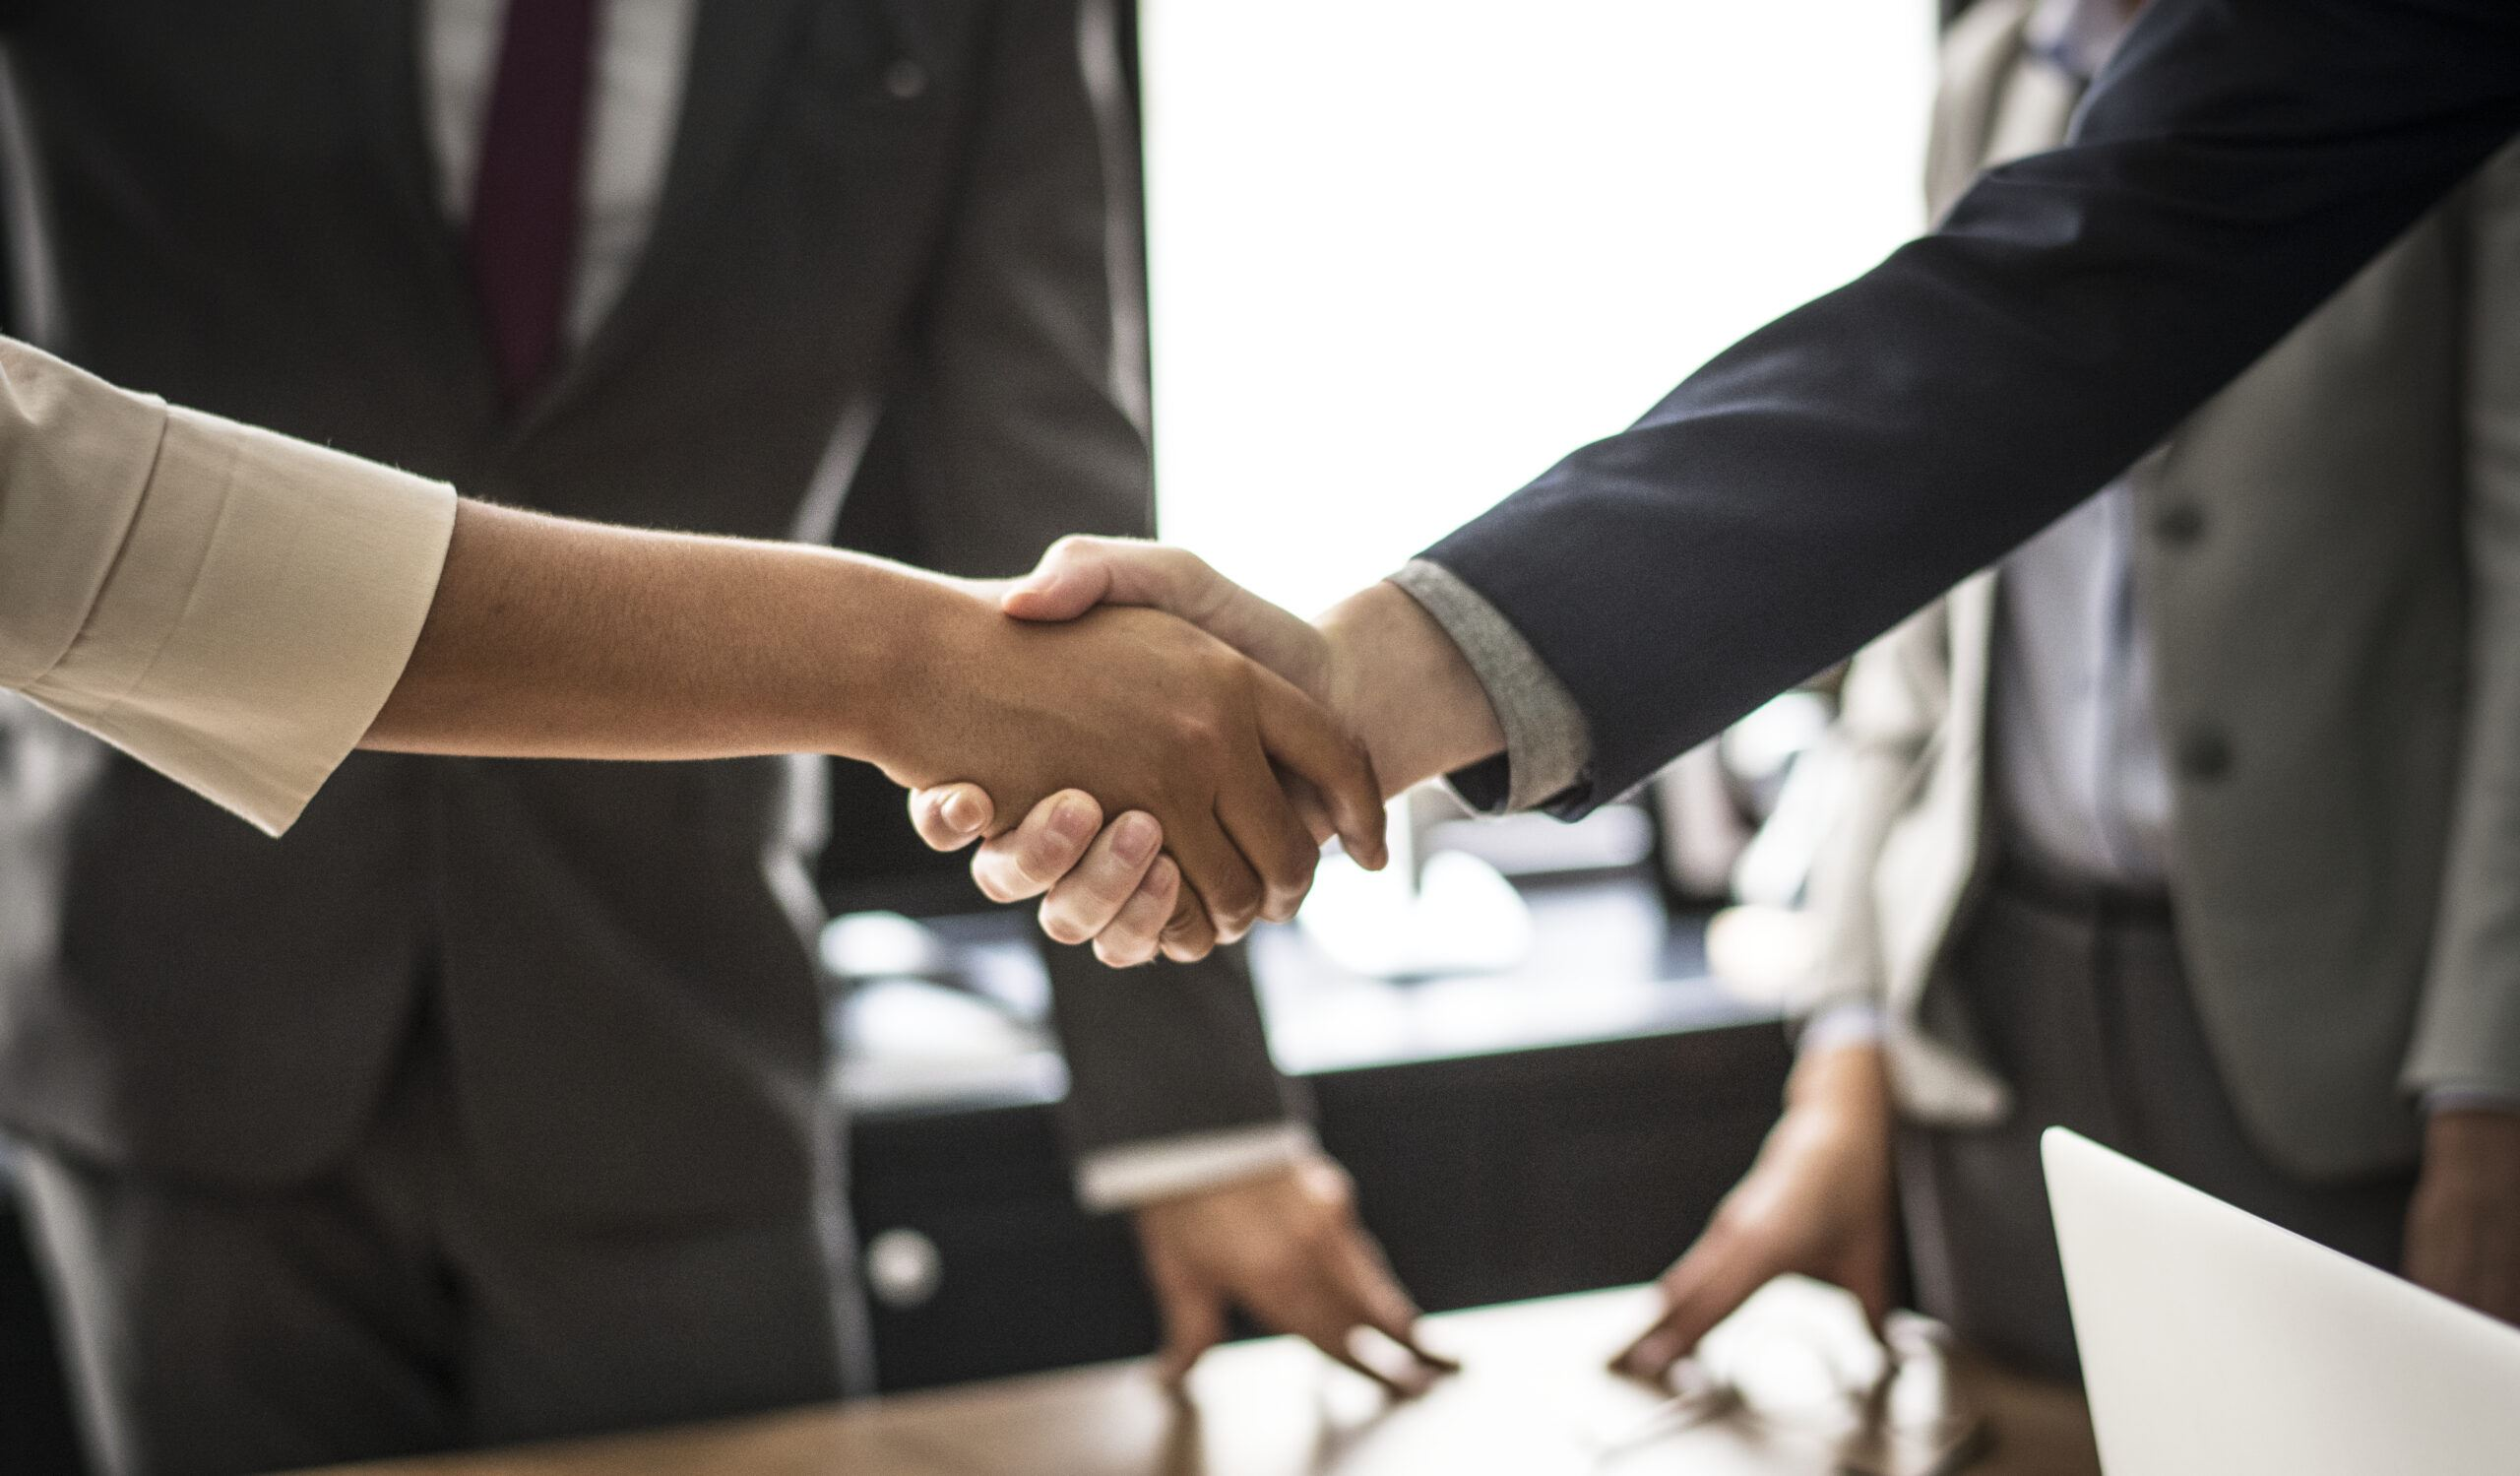 professional services - people in suits shaking hands